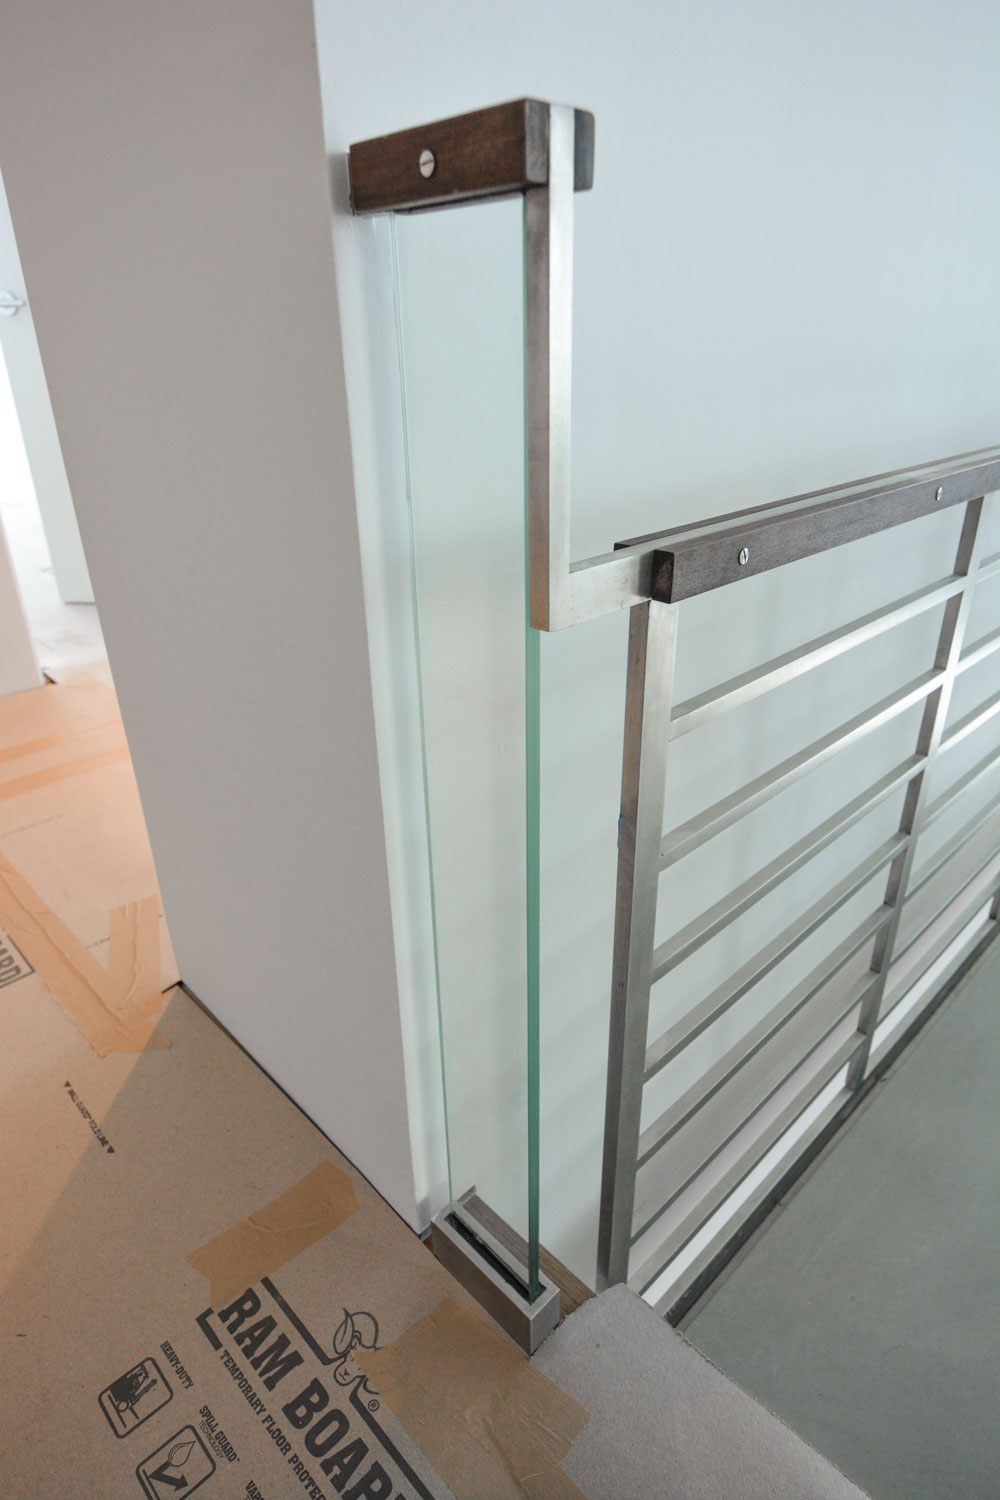 Stainless Steel Helix Staircase.jpg